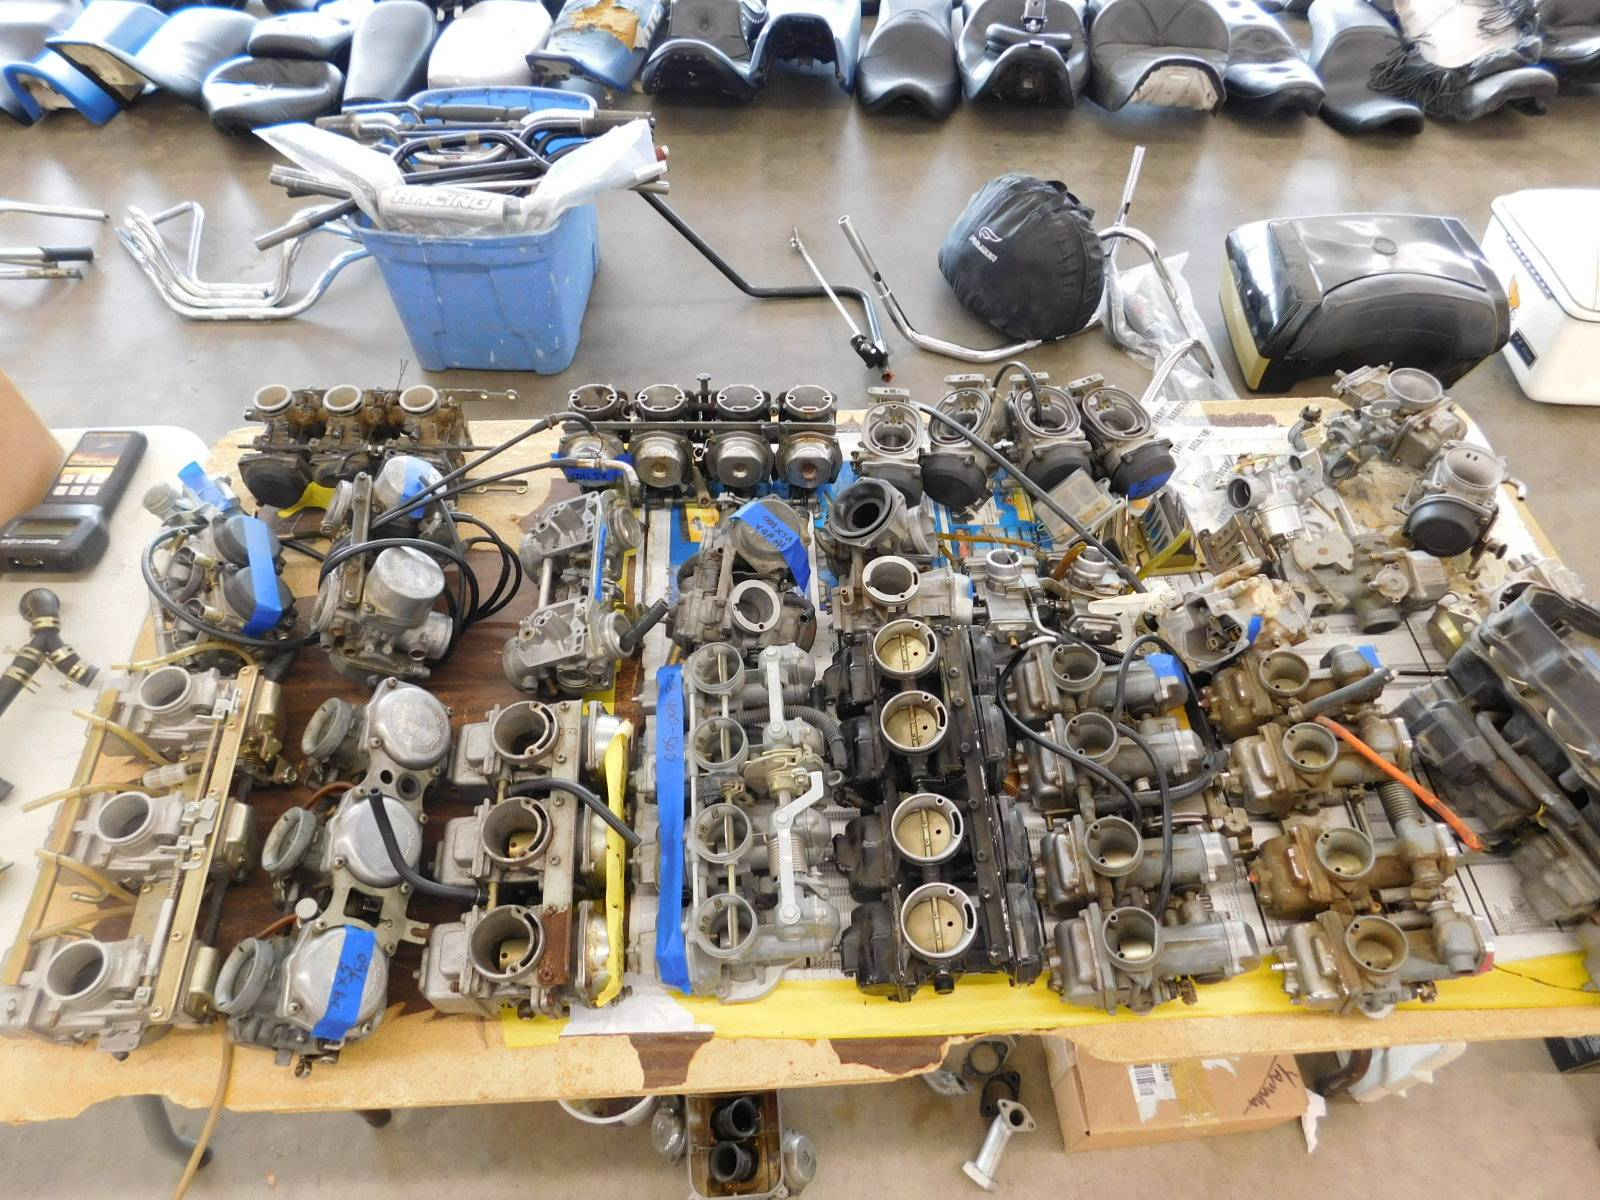 2000 Harley-Davidson Mixed Harley Davidson Parts in Loveland, Colorado - Photo 8